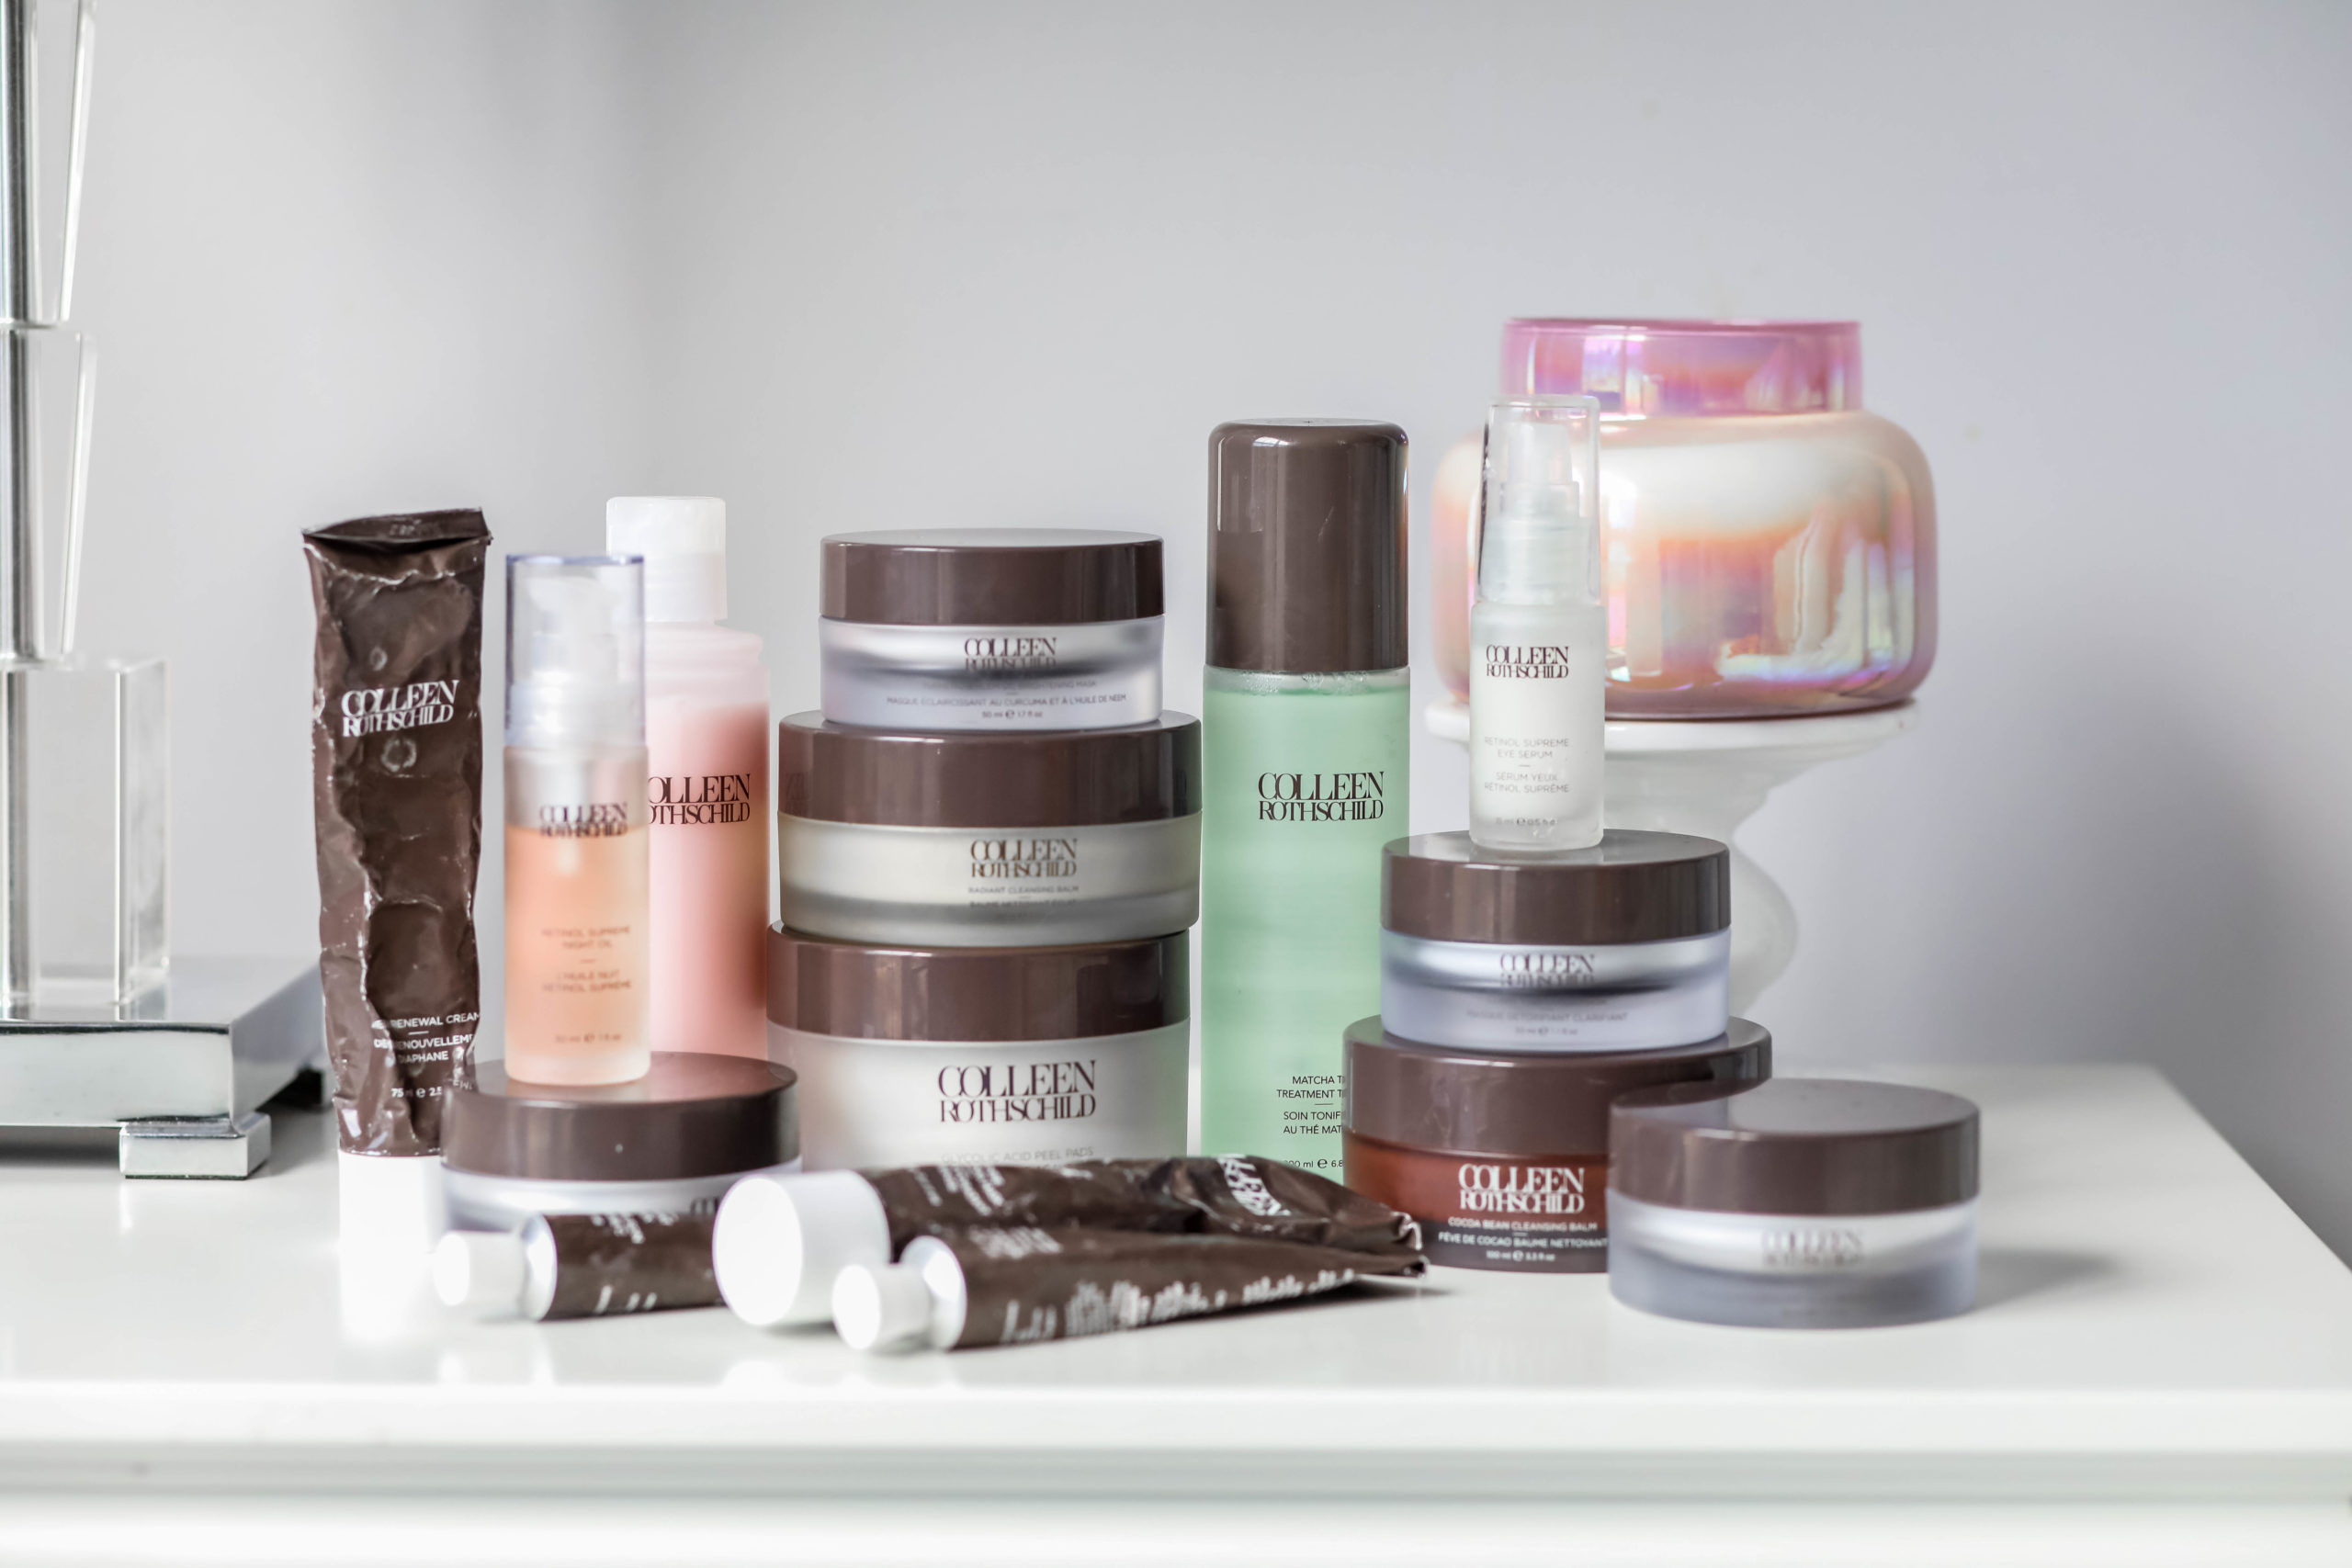 THE BEST SKINCARE INGREDIENTS that need to be in your routine! - also be sure to stock up during the Colleen Rothschild Sale!